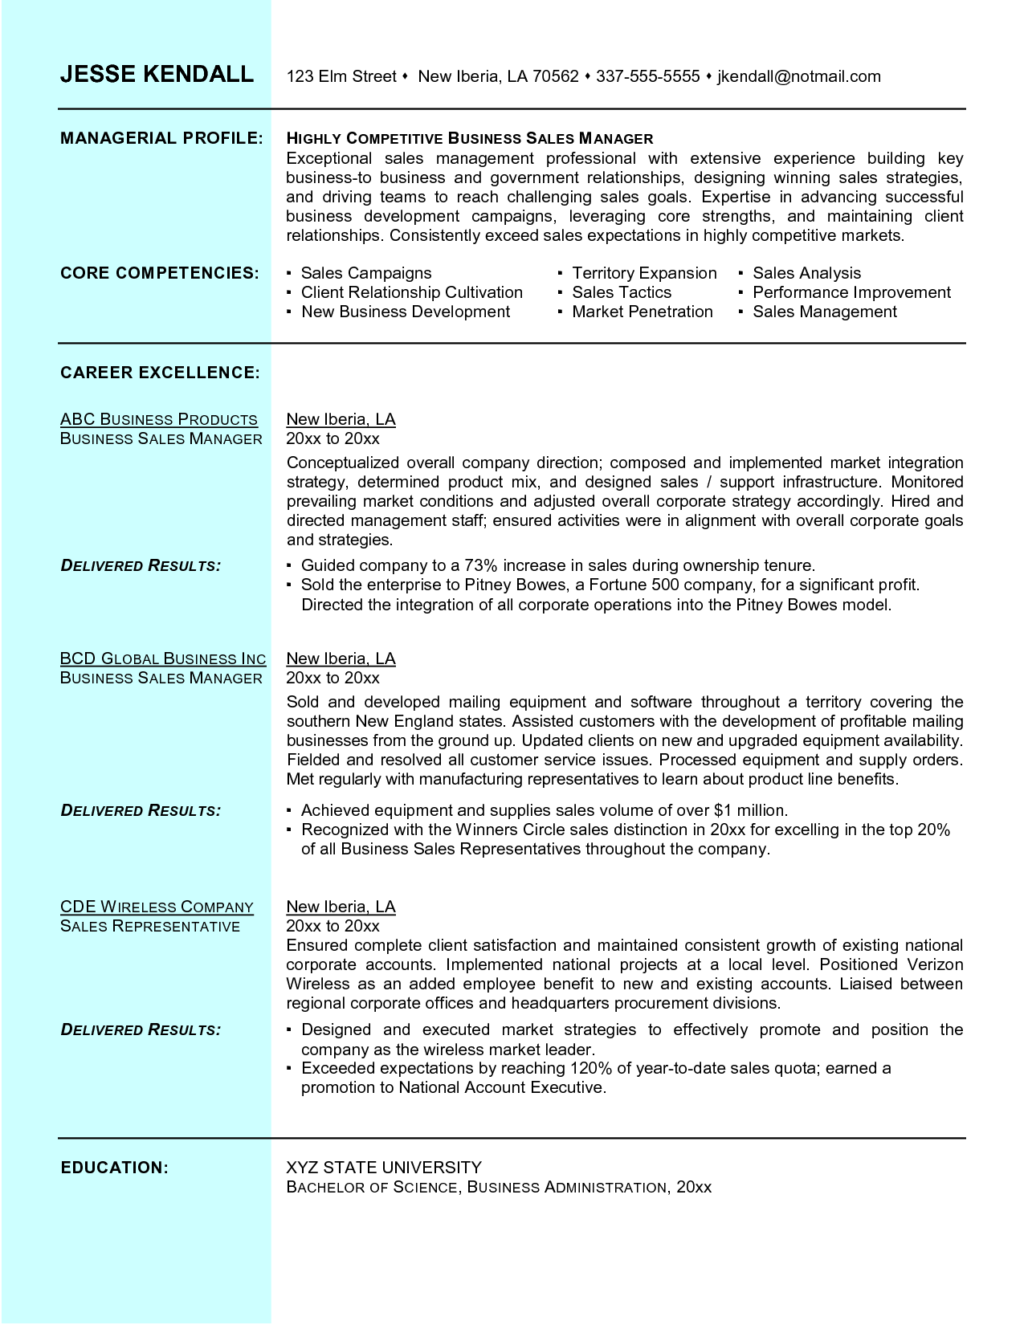 Resume Template GENERAL MANAGER Manager resume, Job